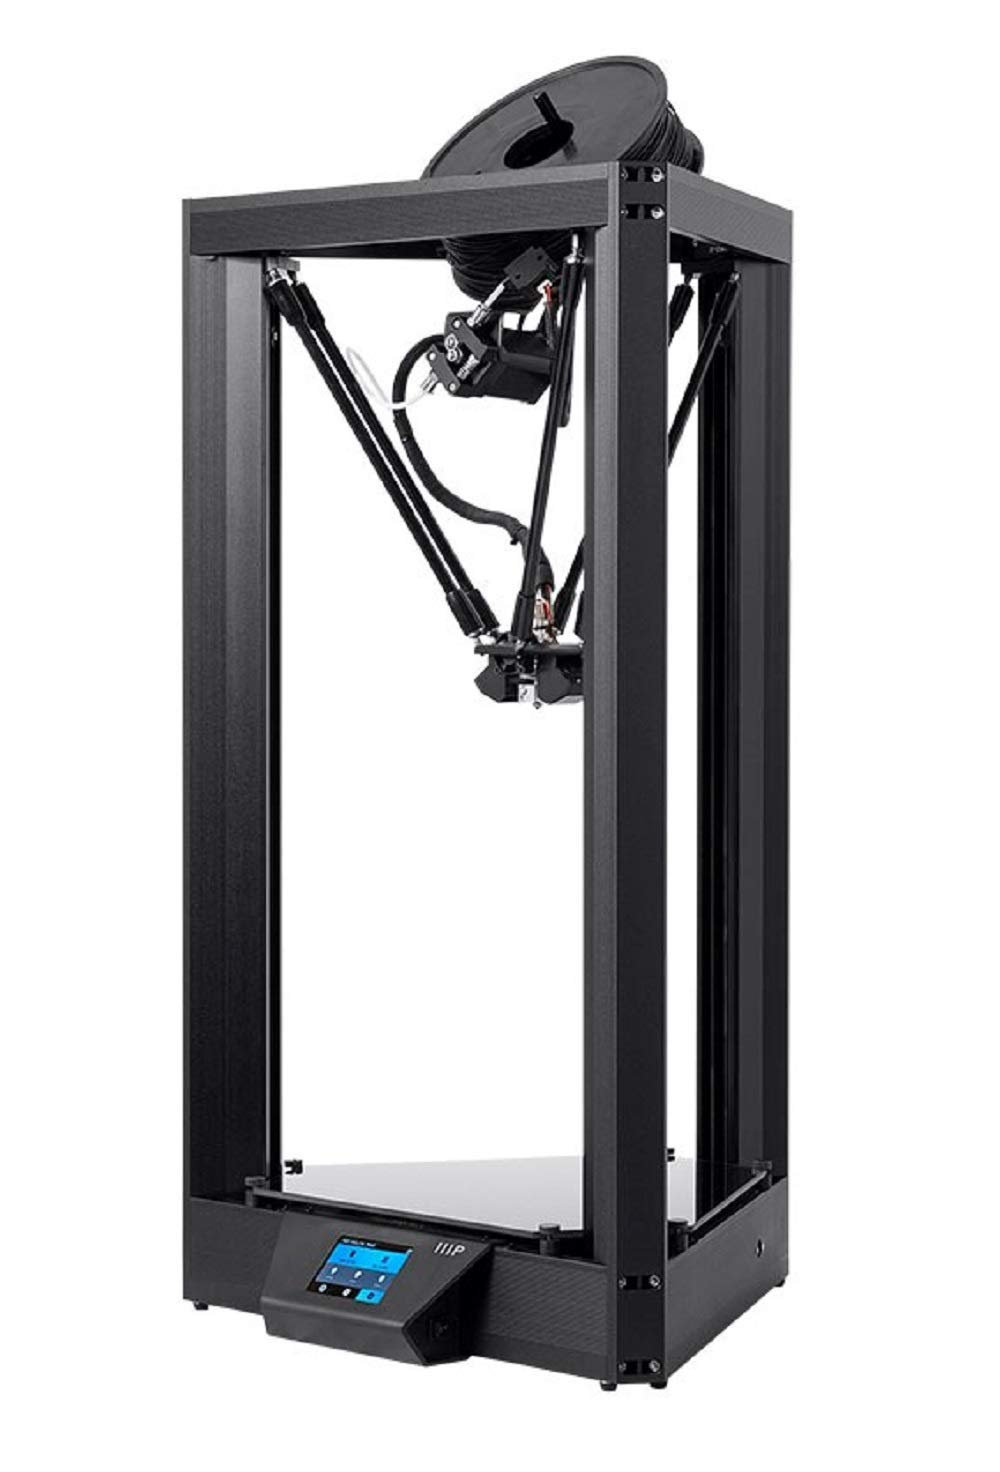 This 3D printer is fully metal and has everything you need to print industrial-quality items at a discounted cost (Photo via Amazon)